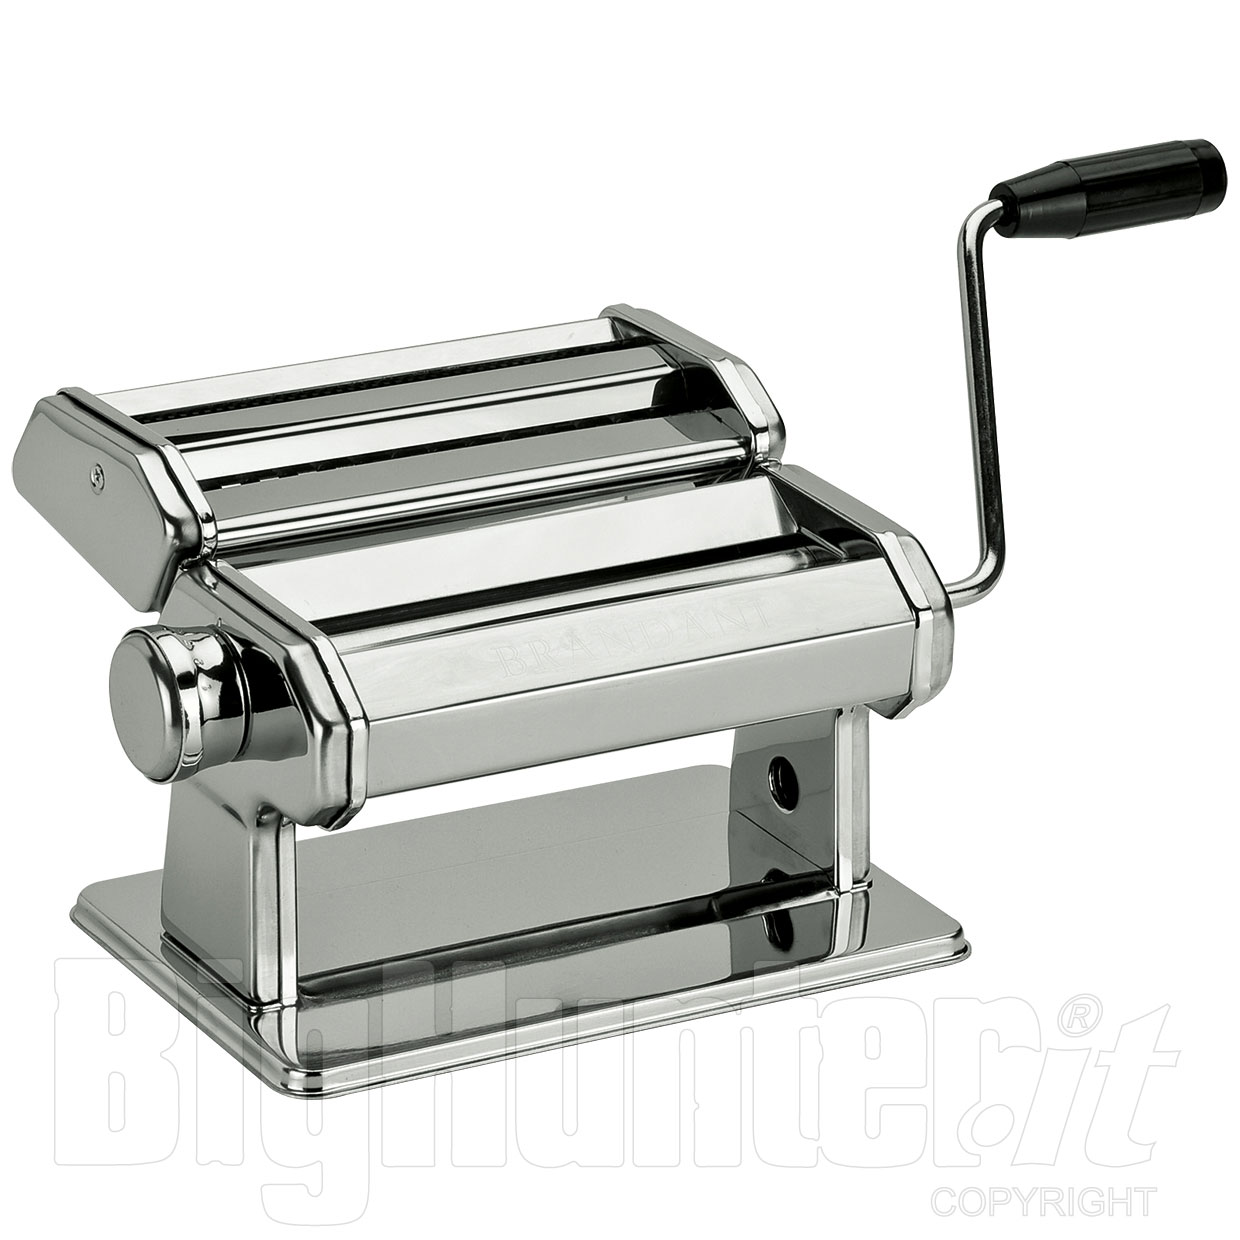 pasta machine manual